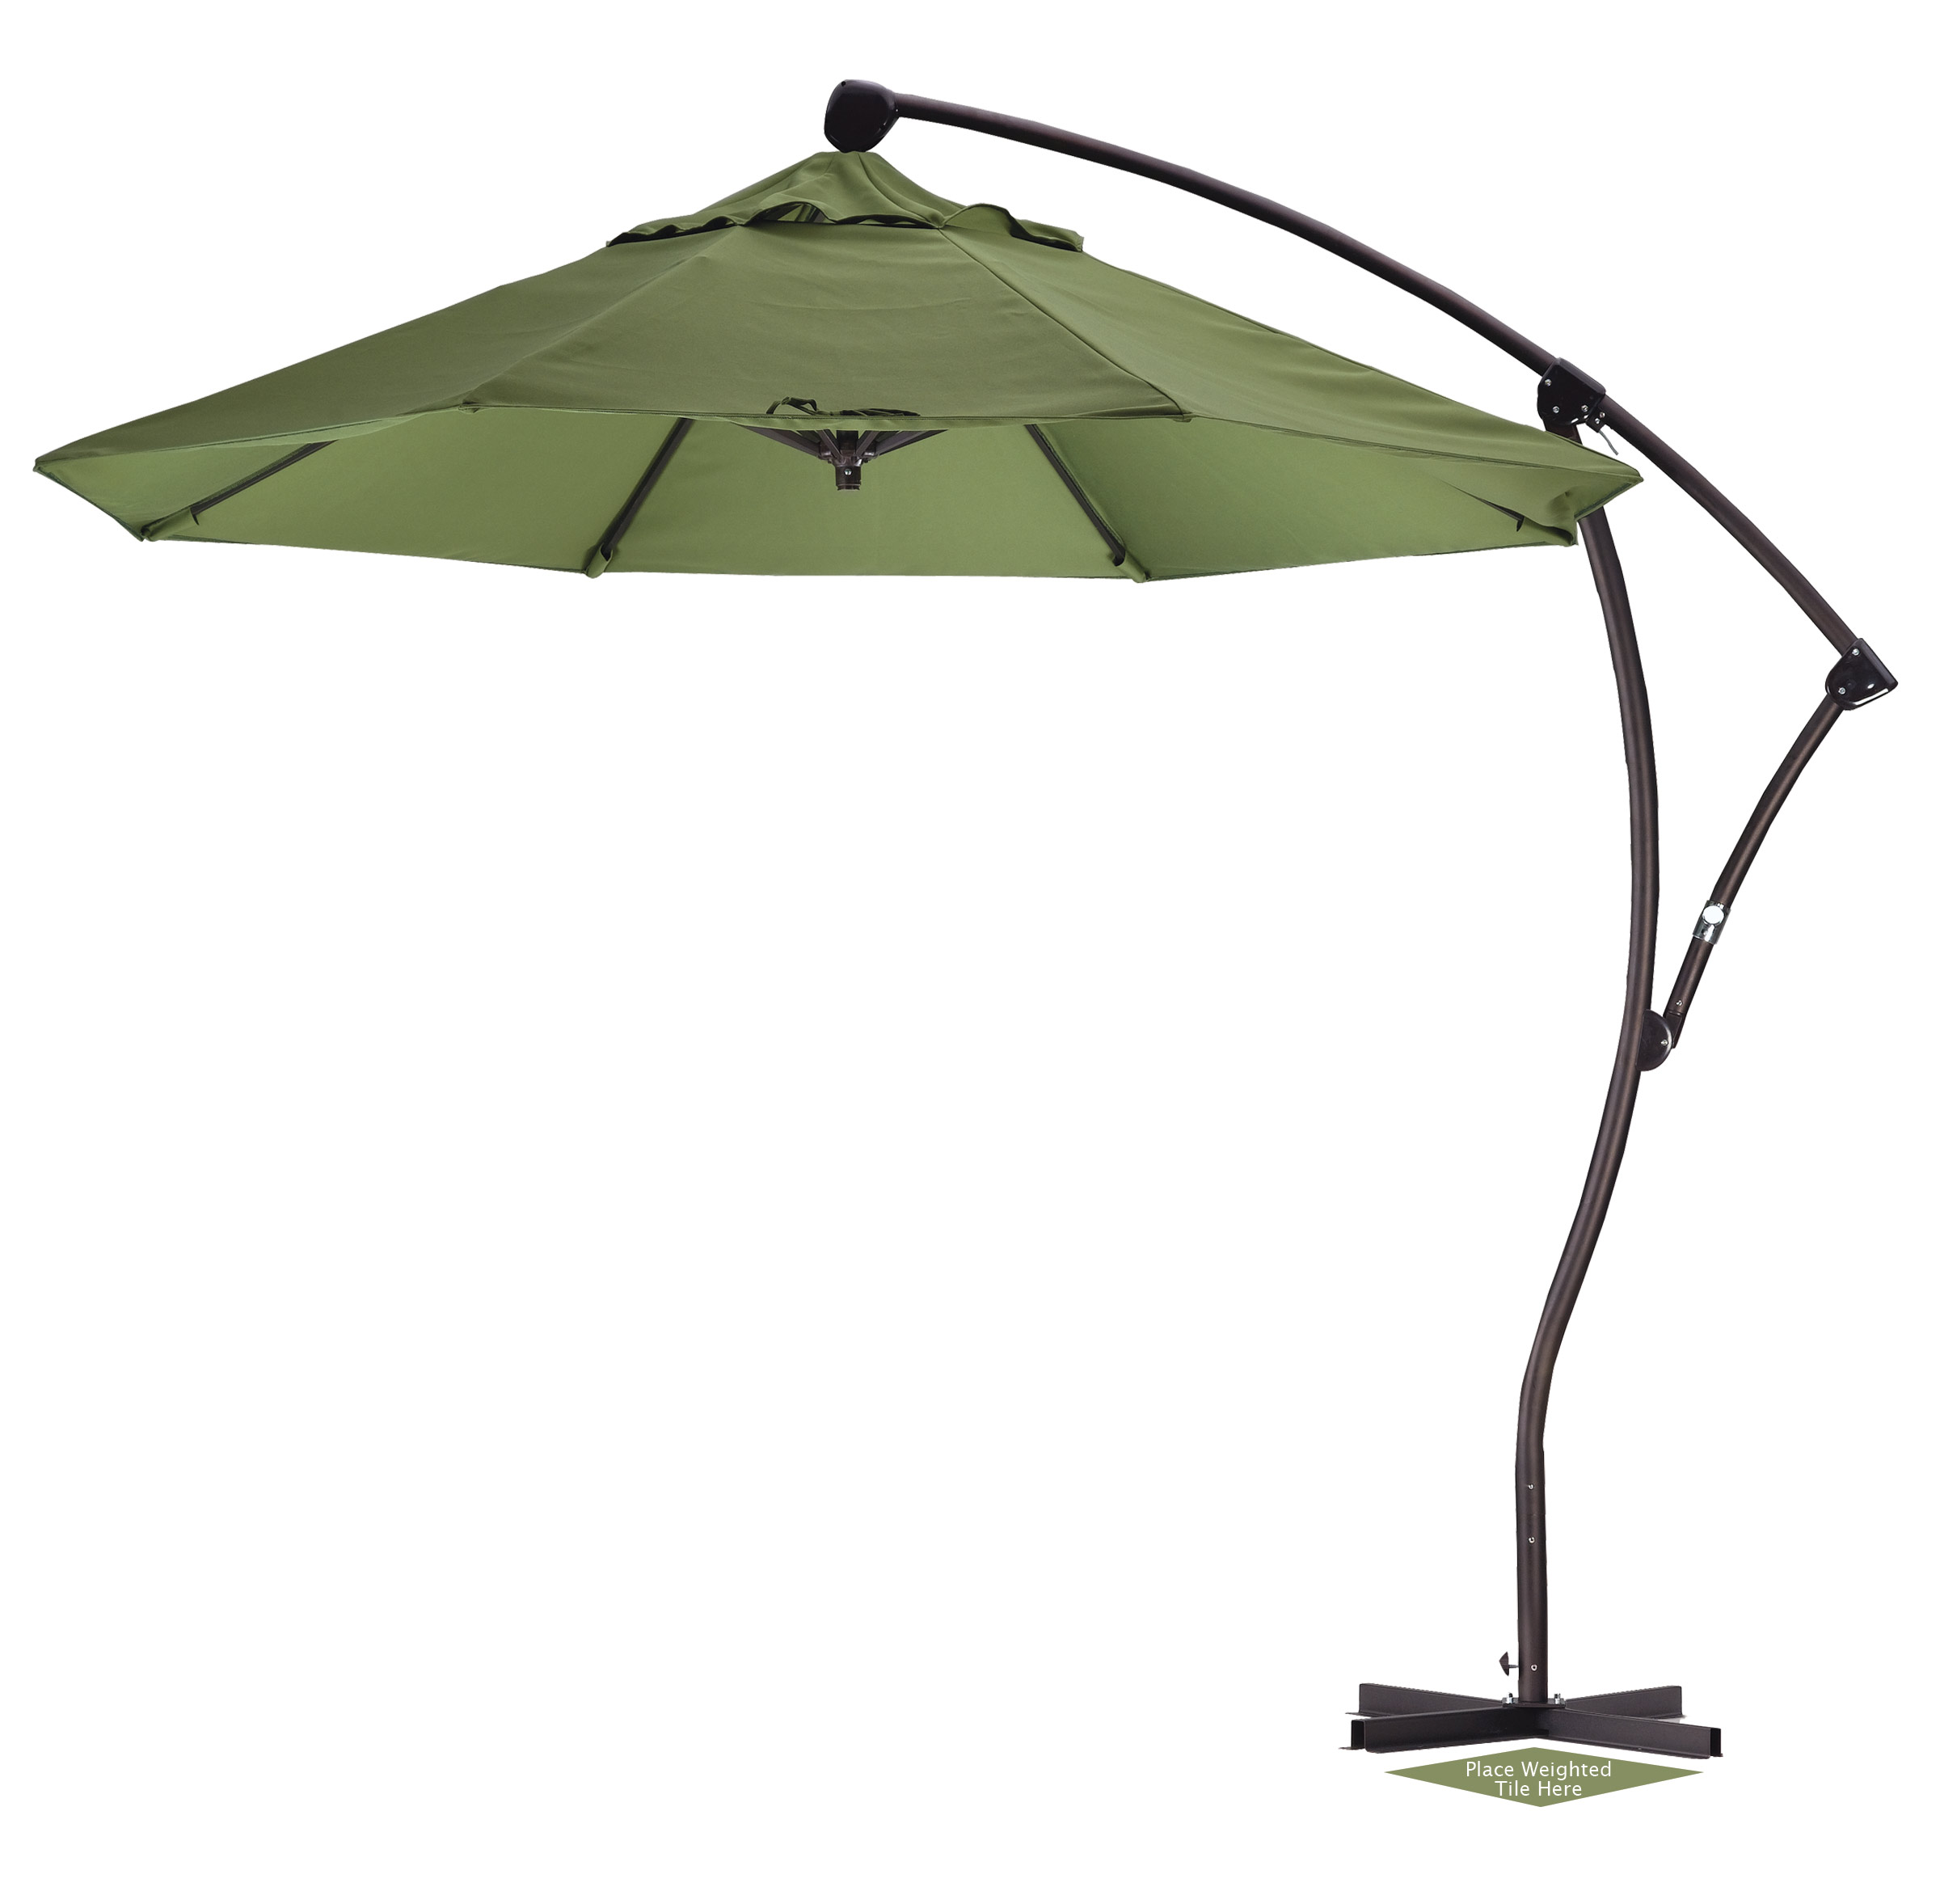 Walmart Patio Umbrella | Umbrellas at Lowes | Garden Treasures Offset Umbrella